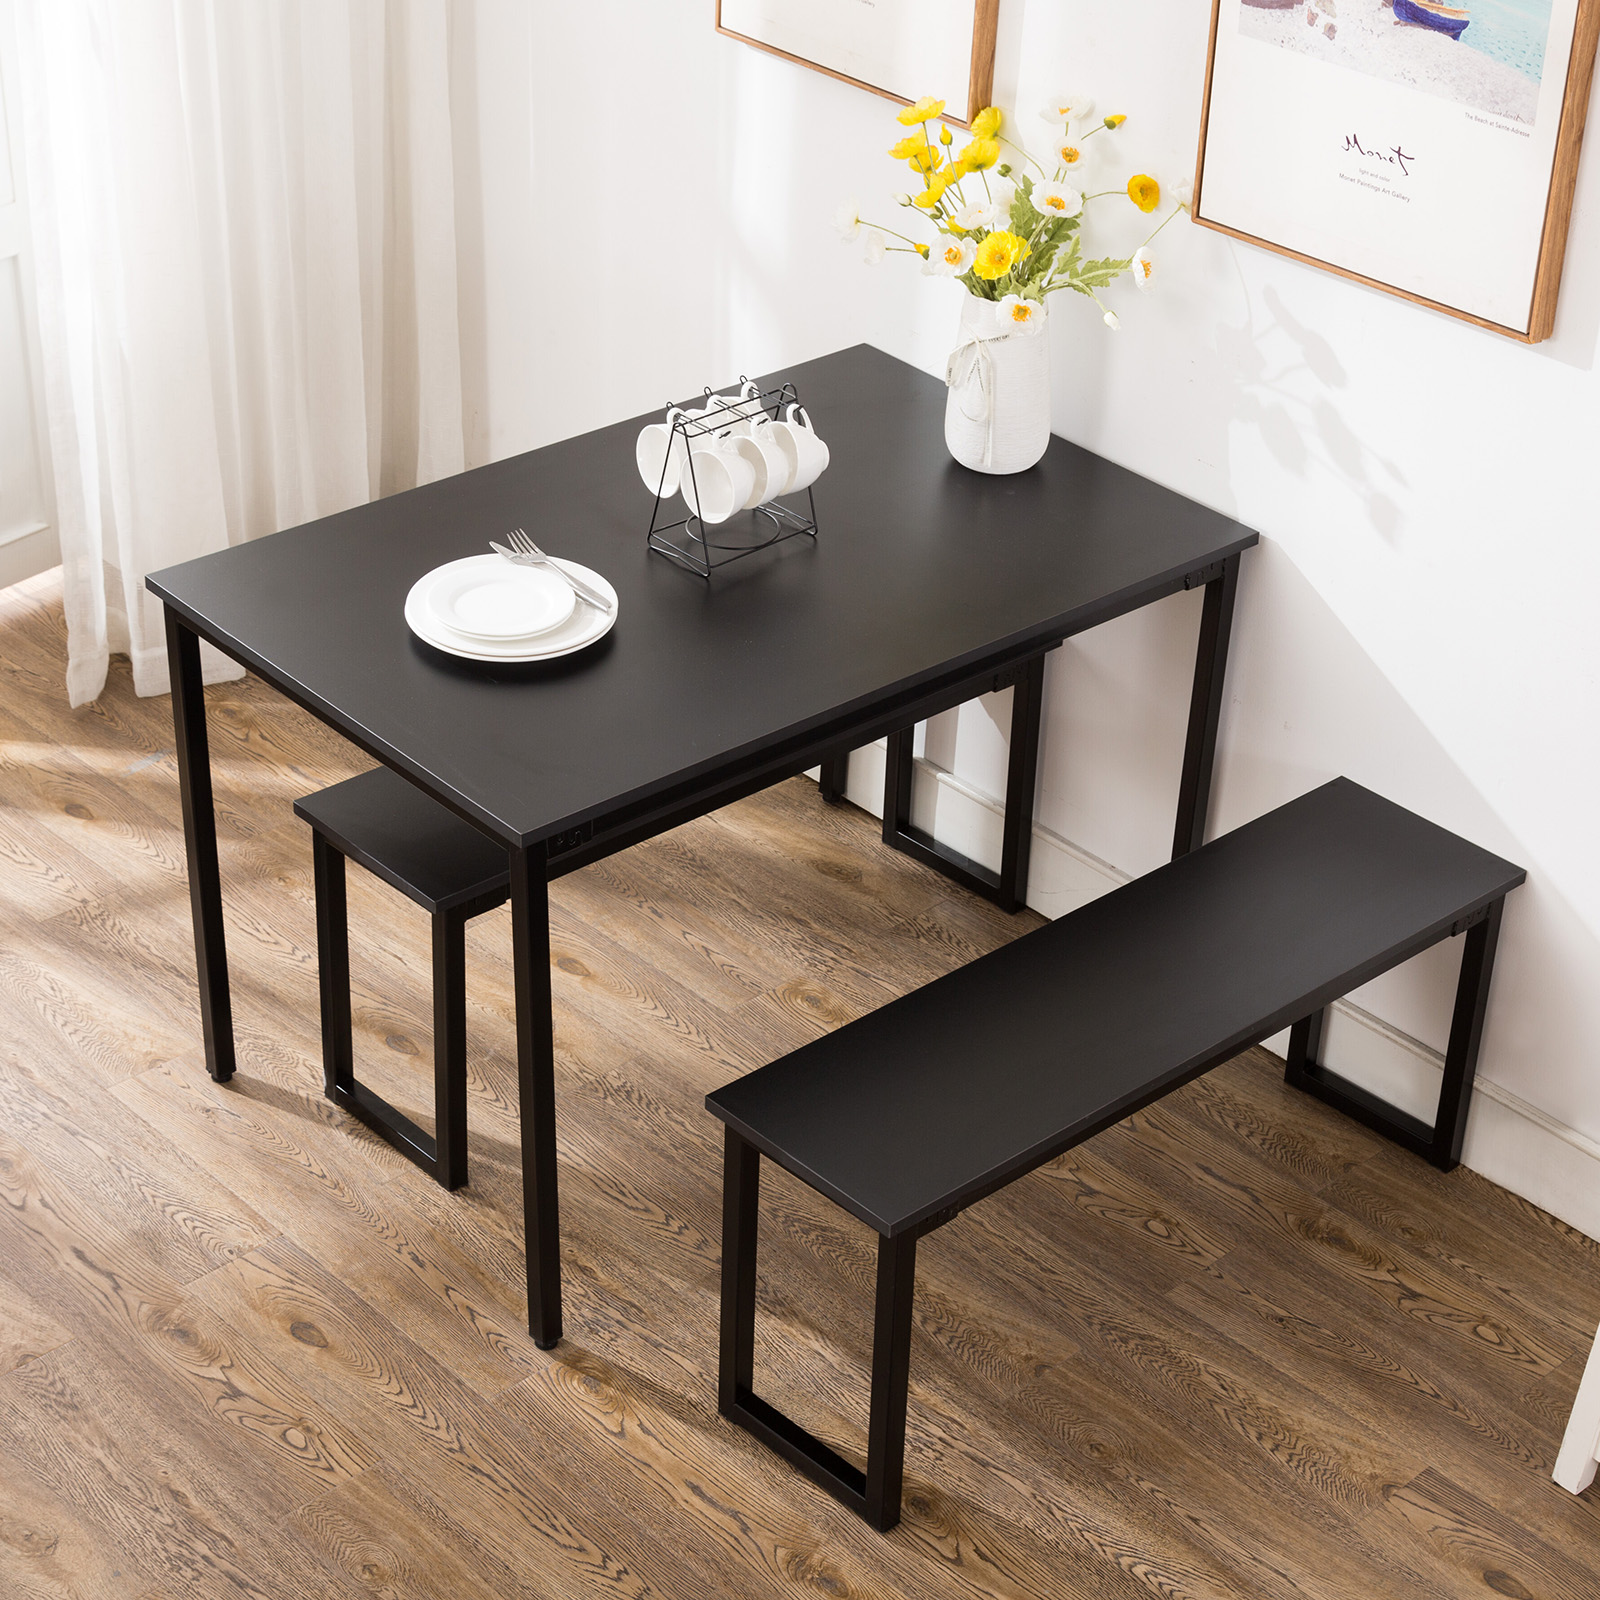 Details about 3 Piece Dining Table Set 2 Chairs Bench Kitchen Dining Room  Breakfast Nook Black